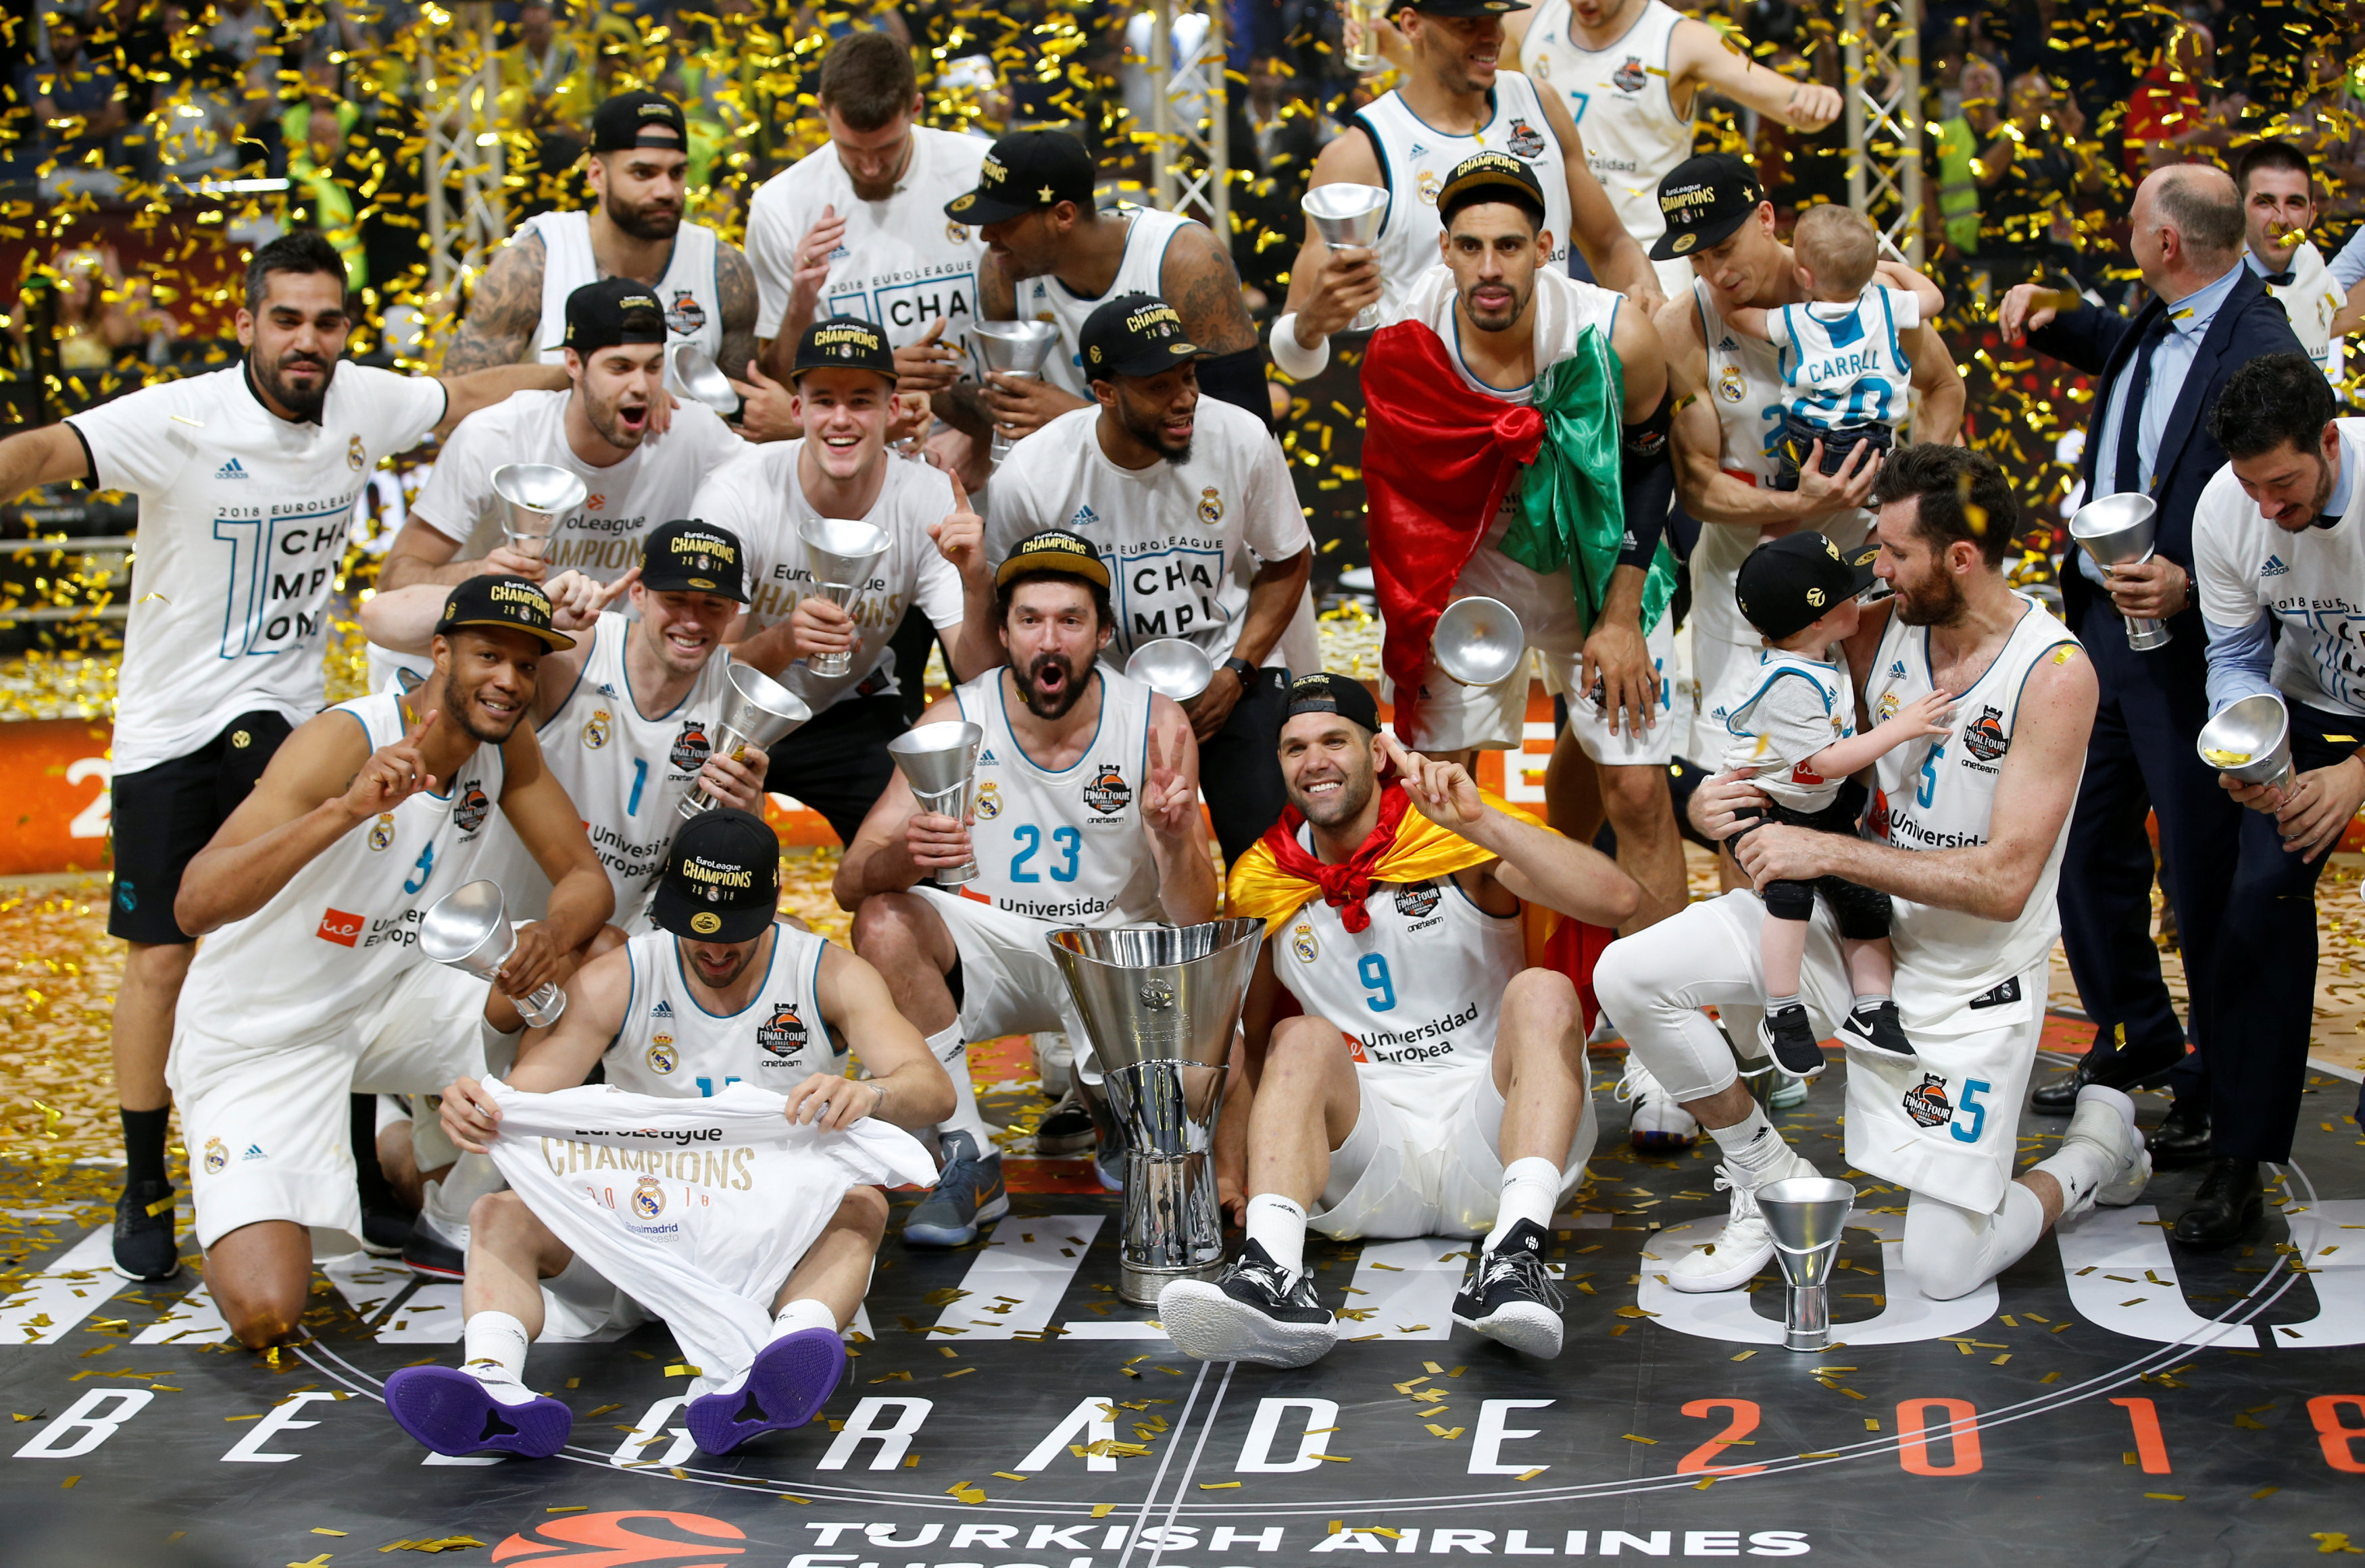 Basket - Coupes d'Europe - Le Real Madrid champion d'Europe avec un grand Fabien Causeur